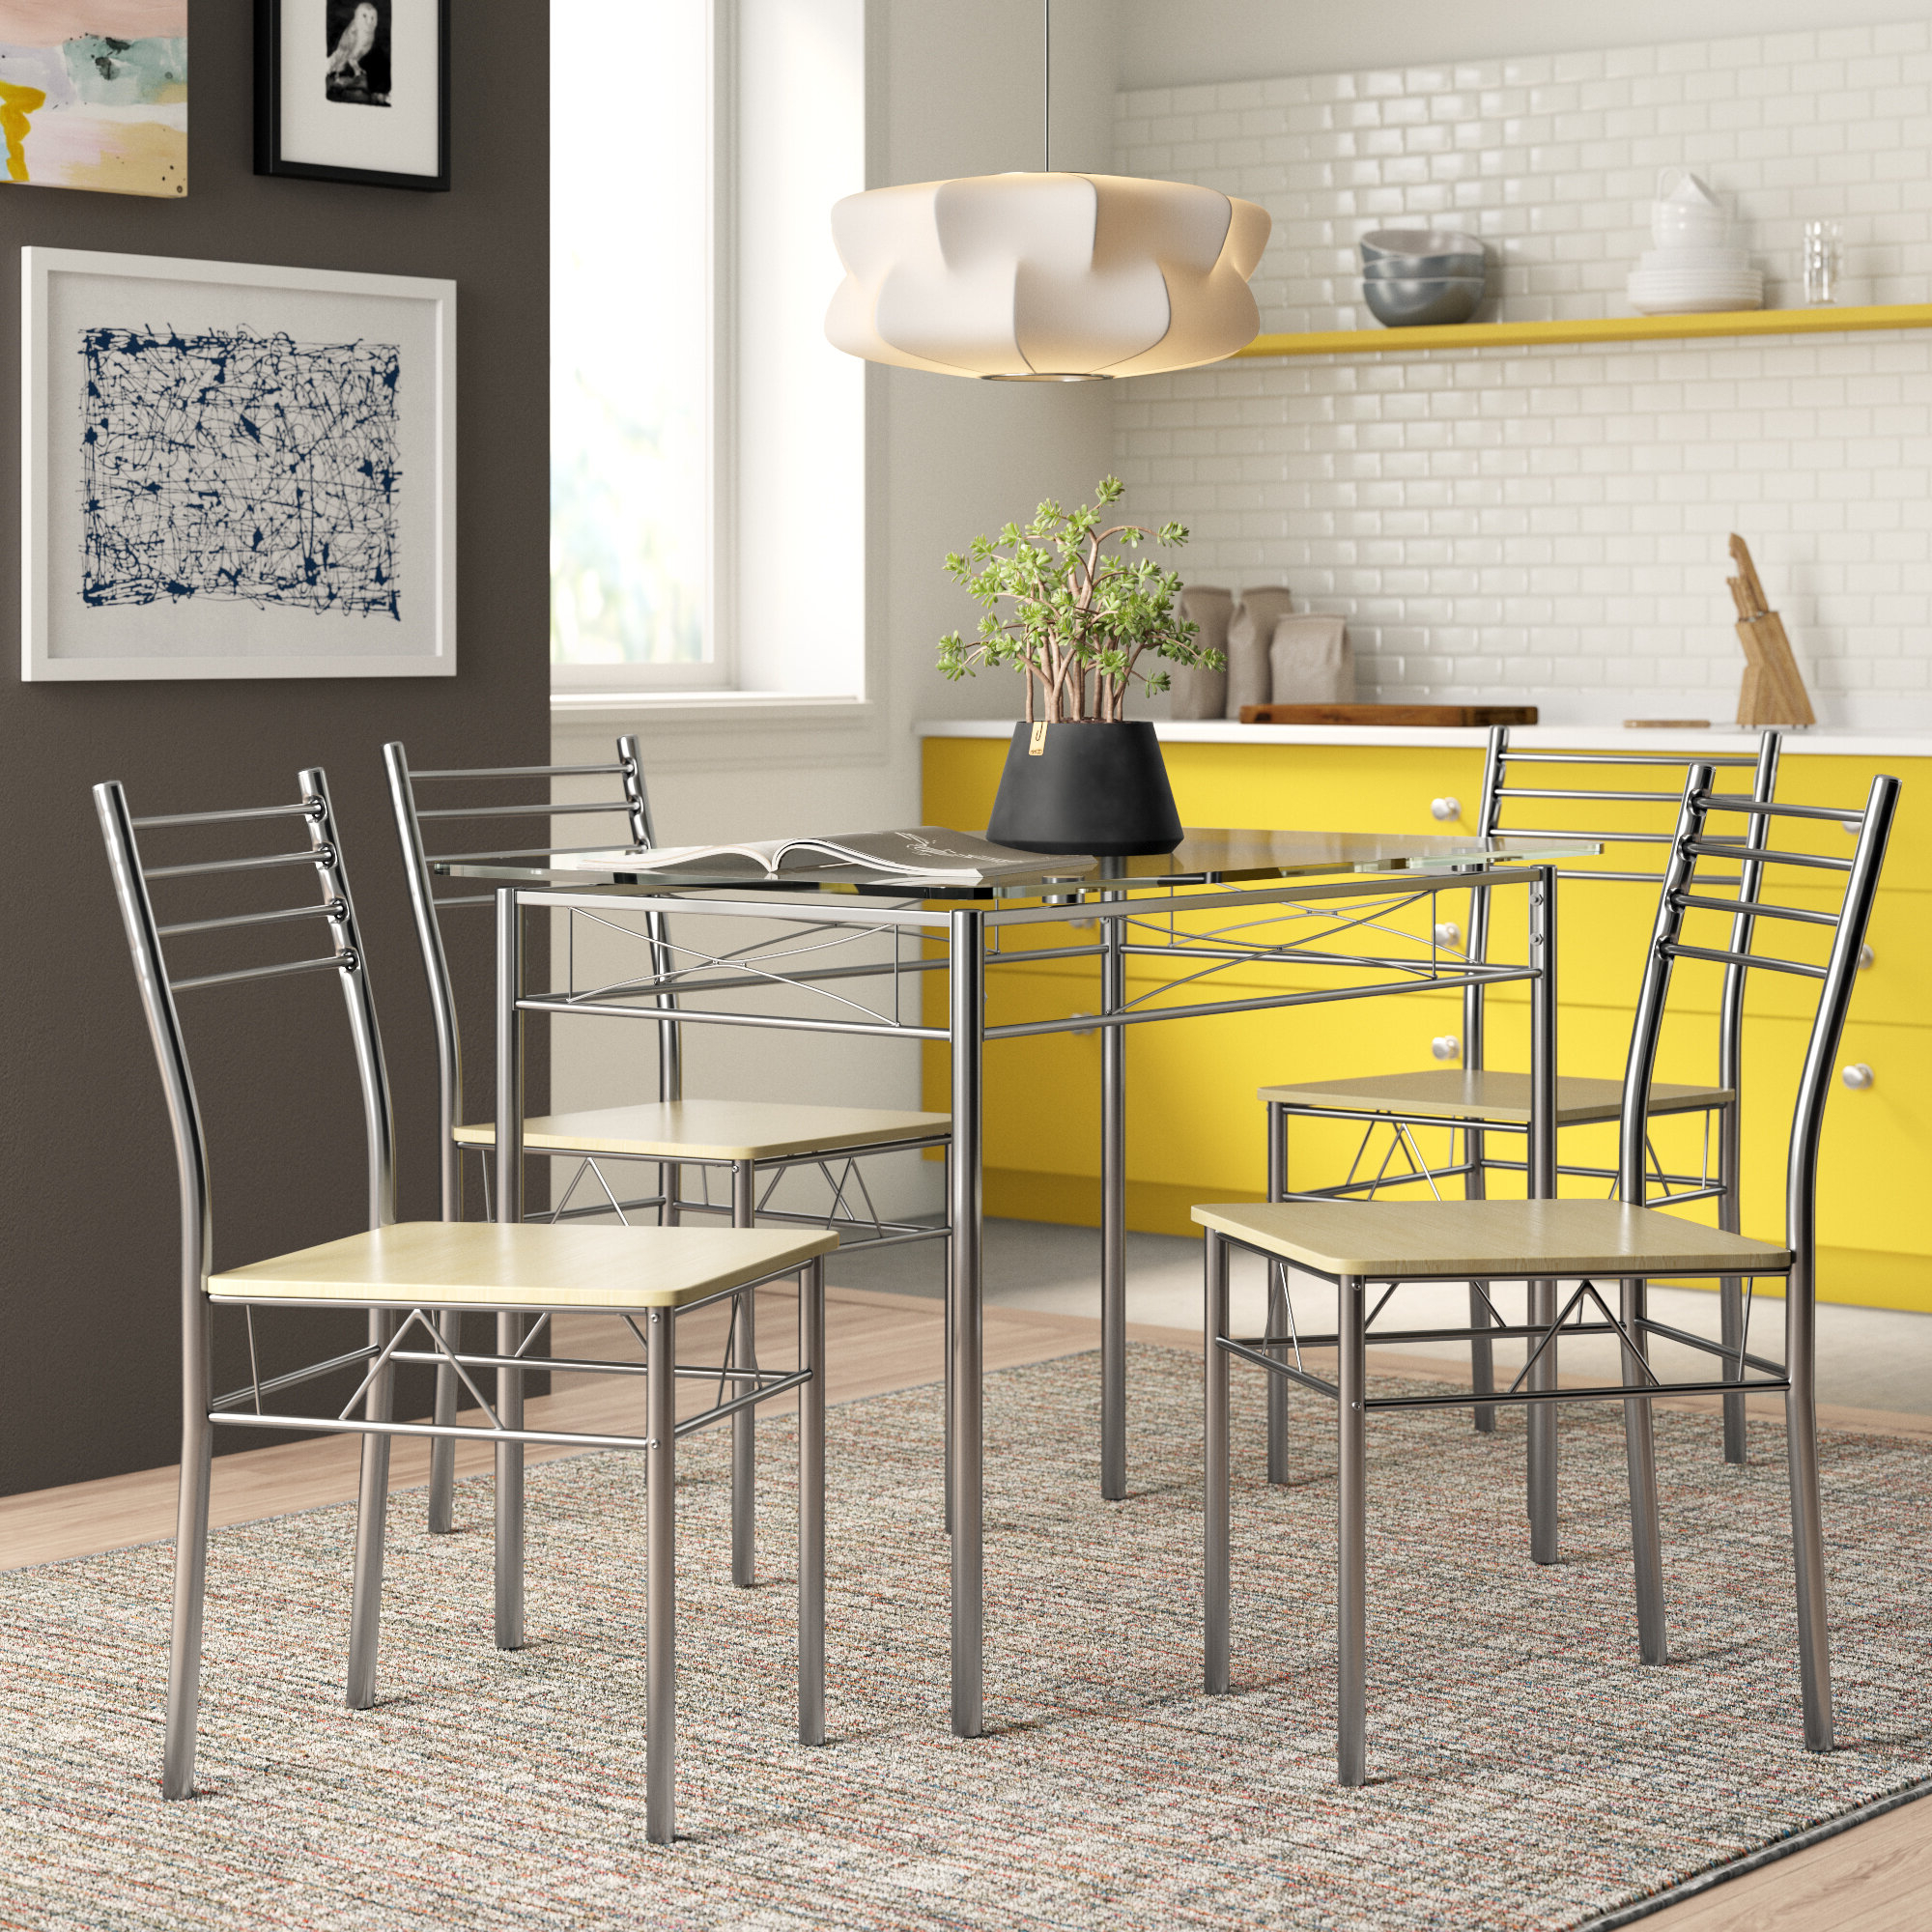 North Reading 5 Piece Dining Table Sets with regard to Fashionable Zipcode Design North Reading 5 Piece Dining Table Set & Reviews